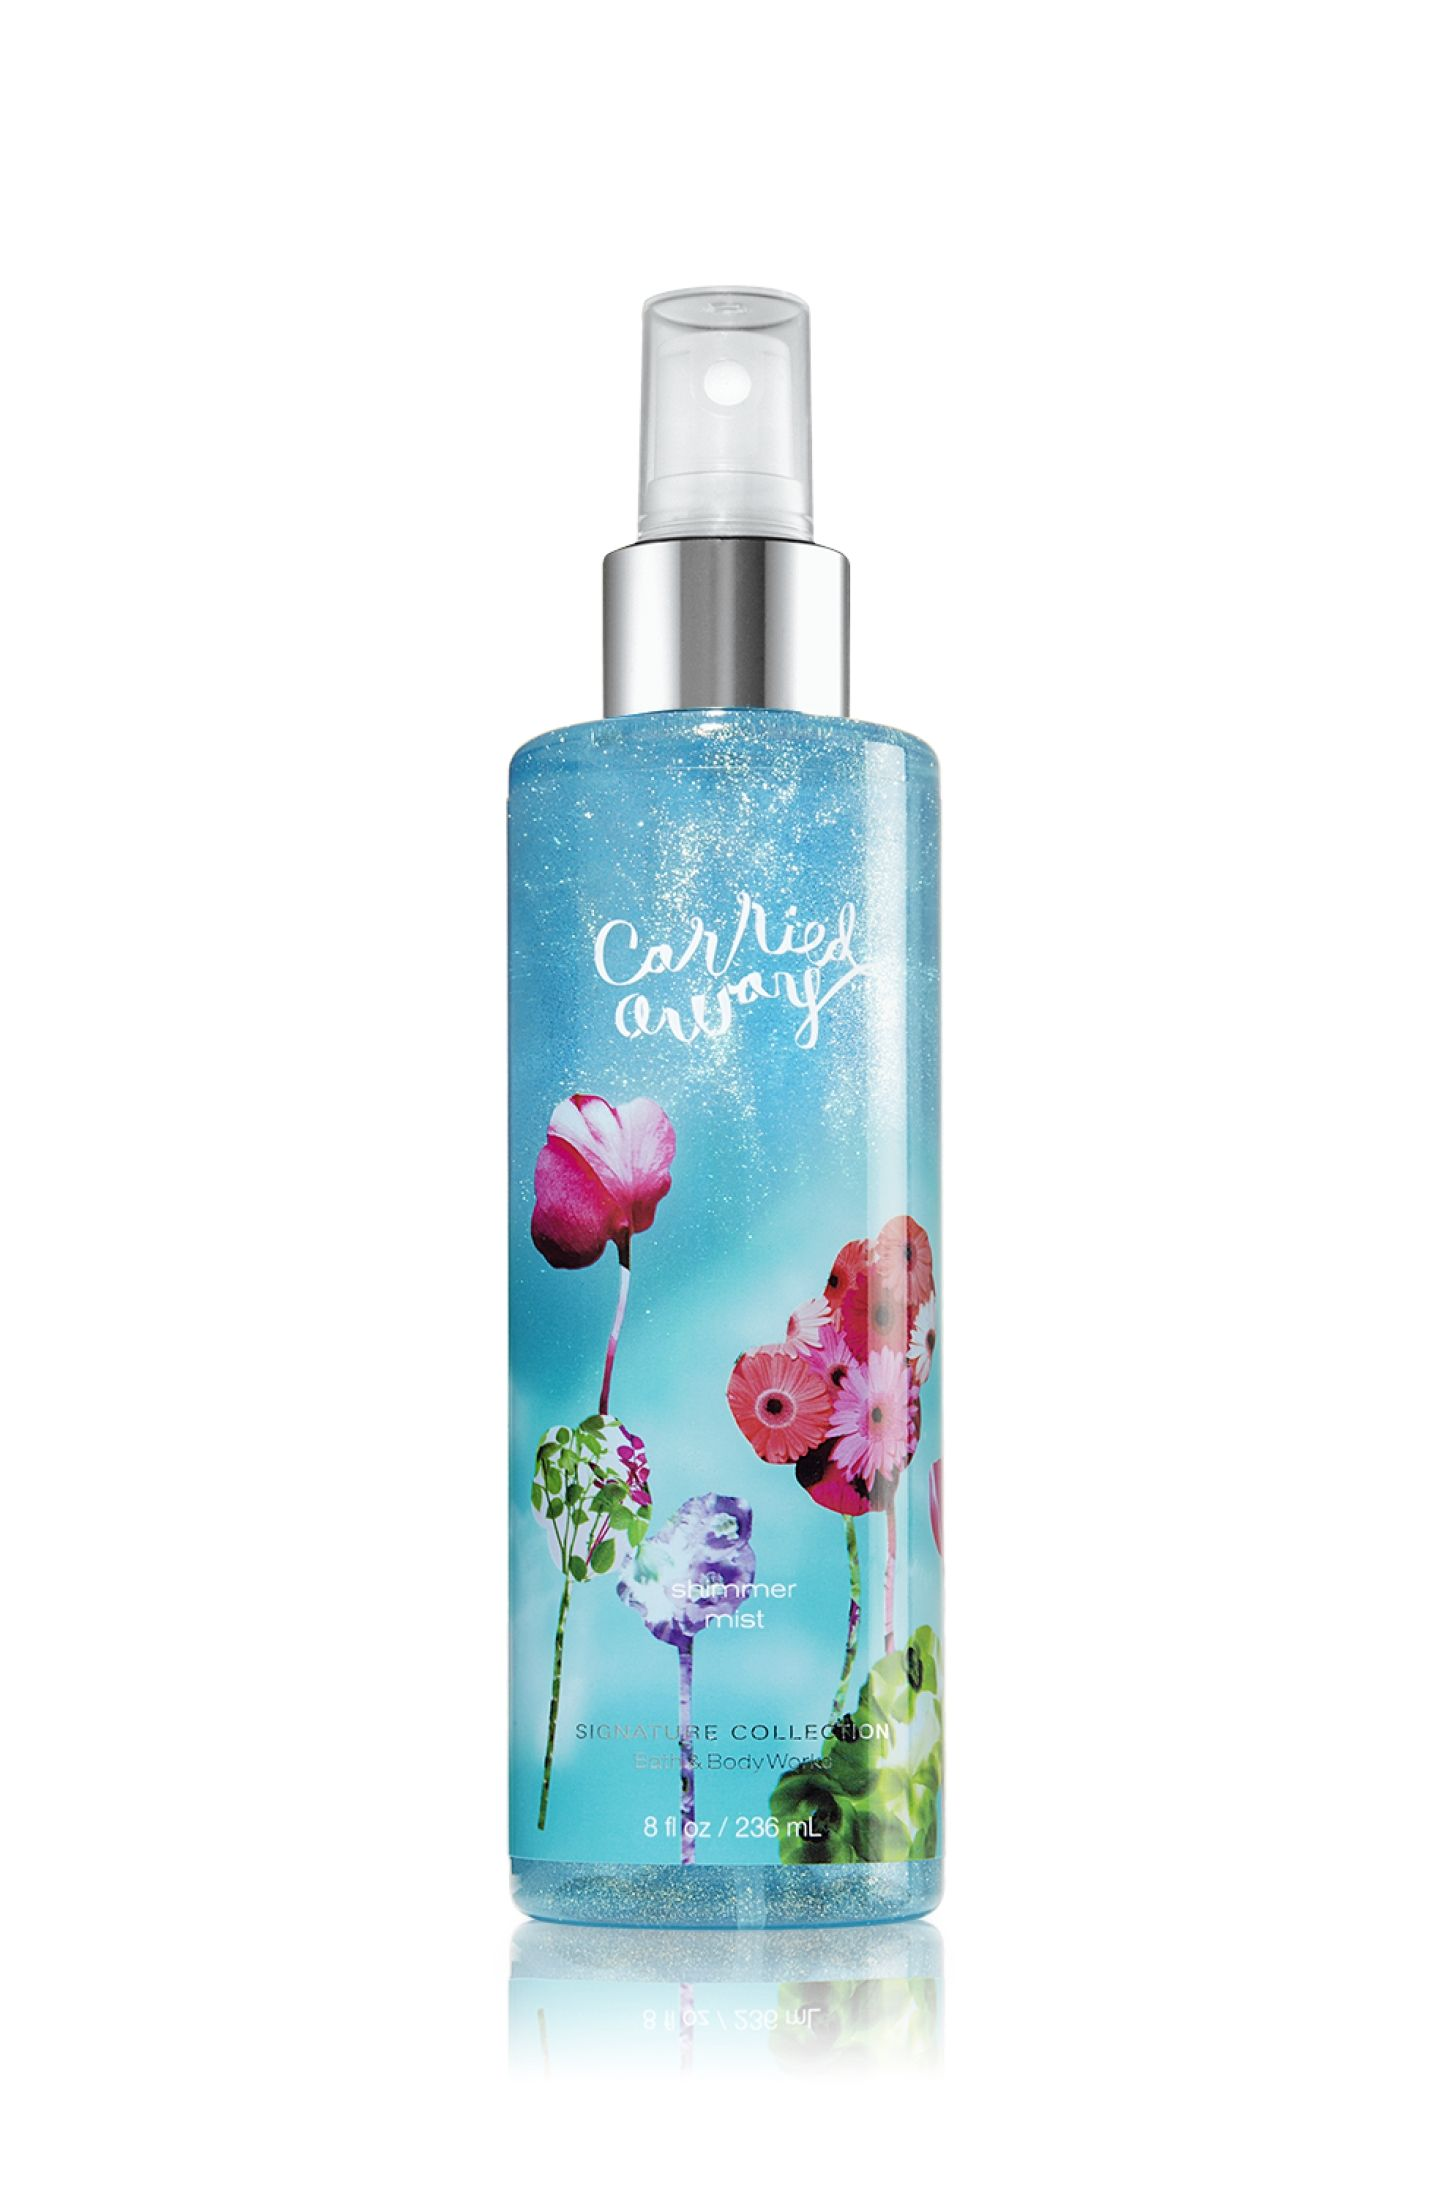 Carried Away Shimmer Mist Signature Collection Bath